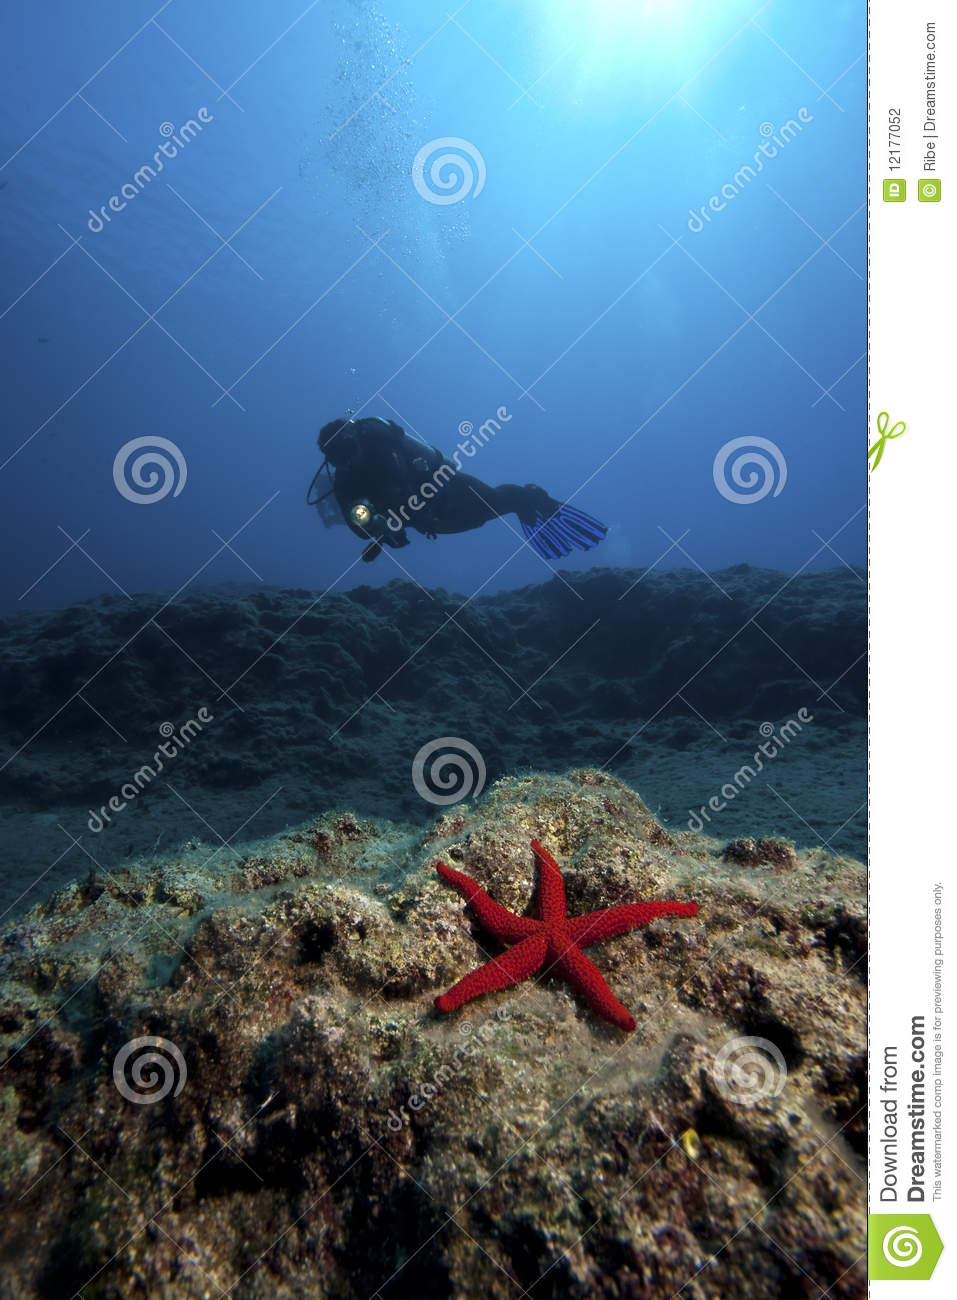 Starfish & Diver in deep water